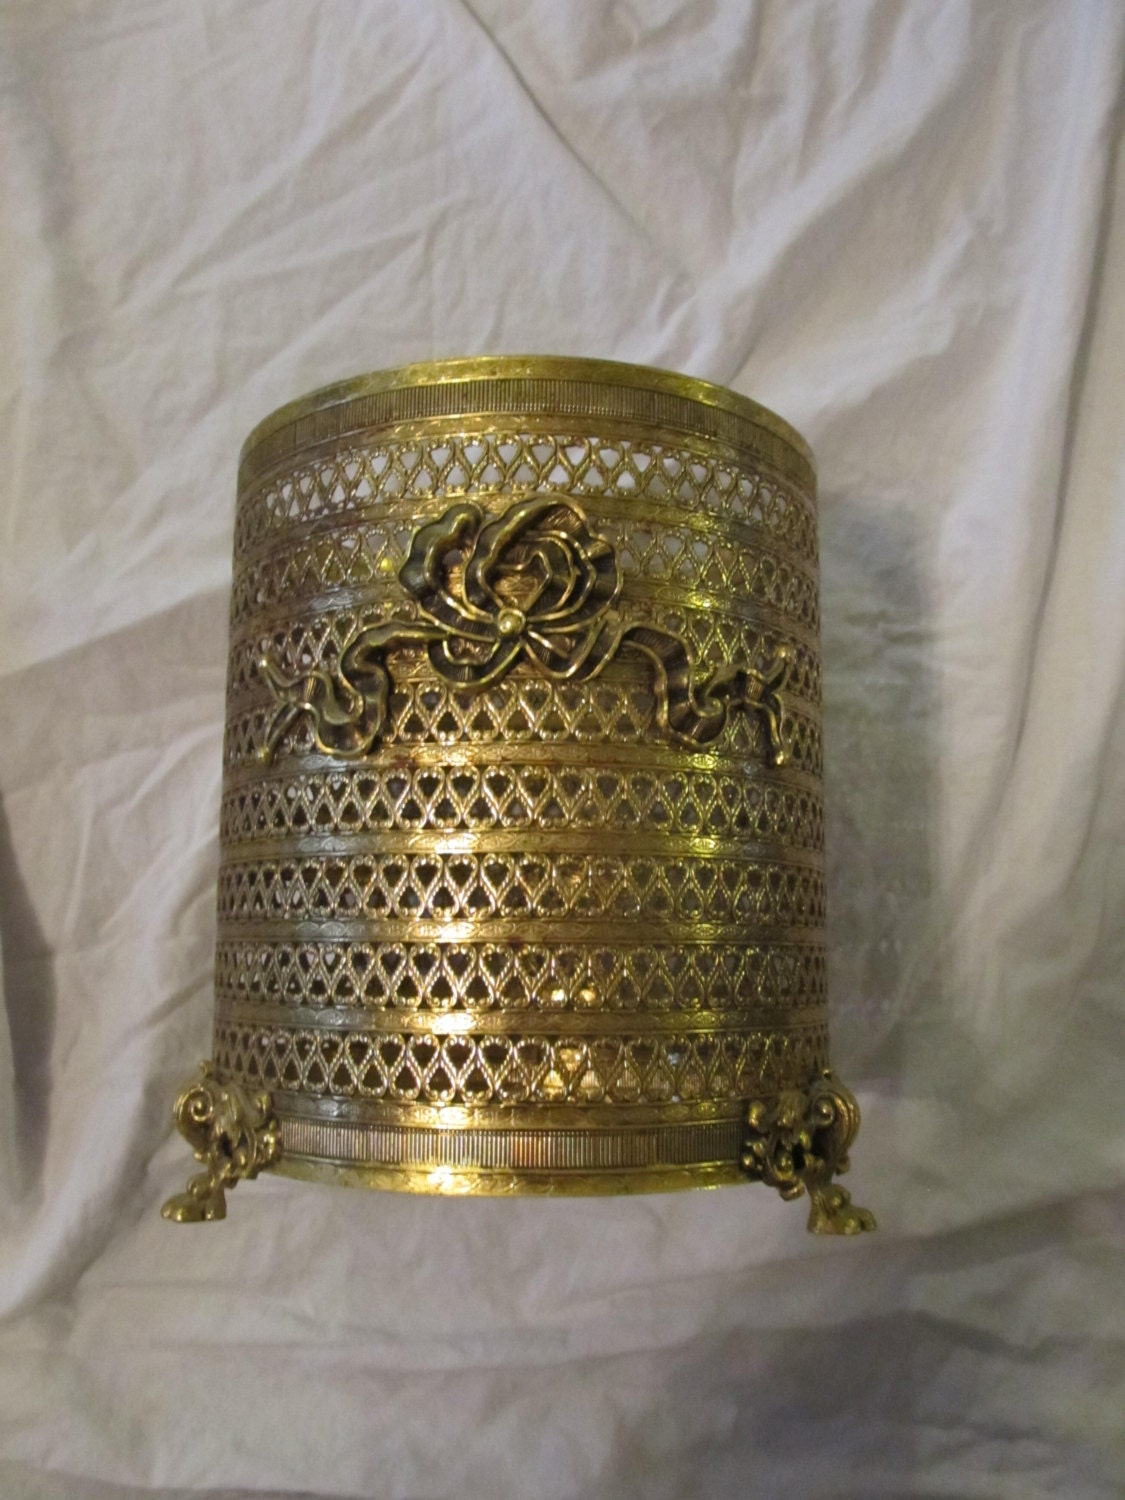 Claw footed filigree brass wastebasket cover bathroom decor for Covered bathroom wastebasket